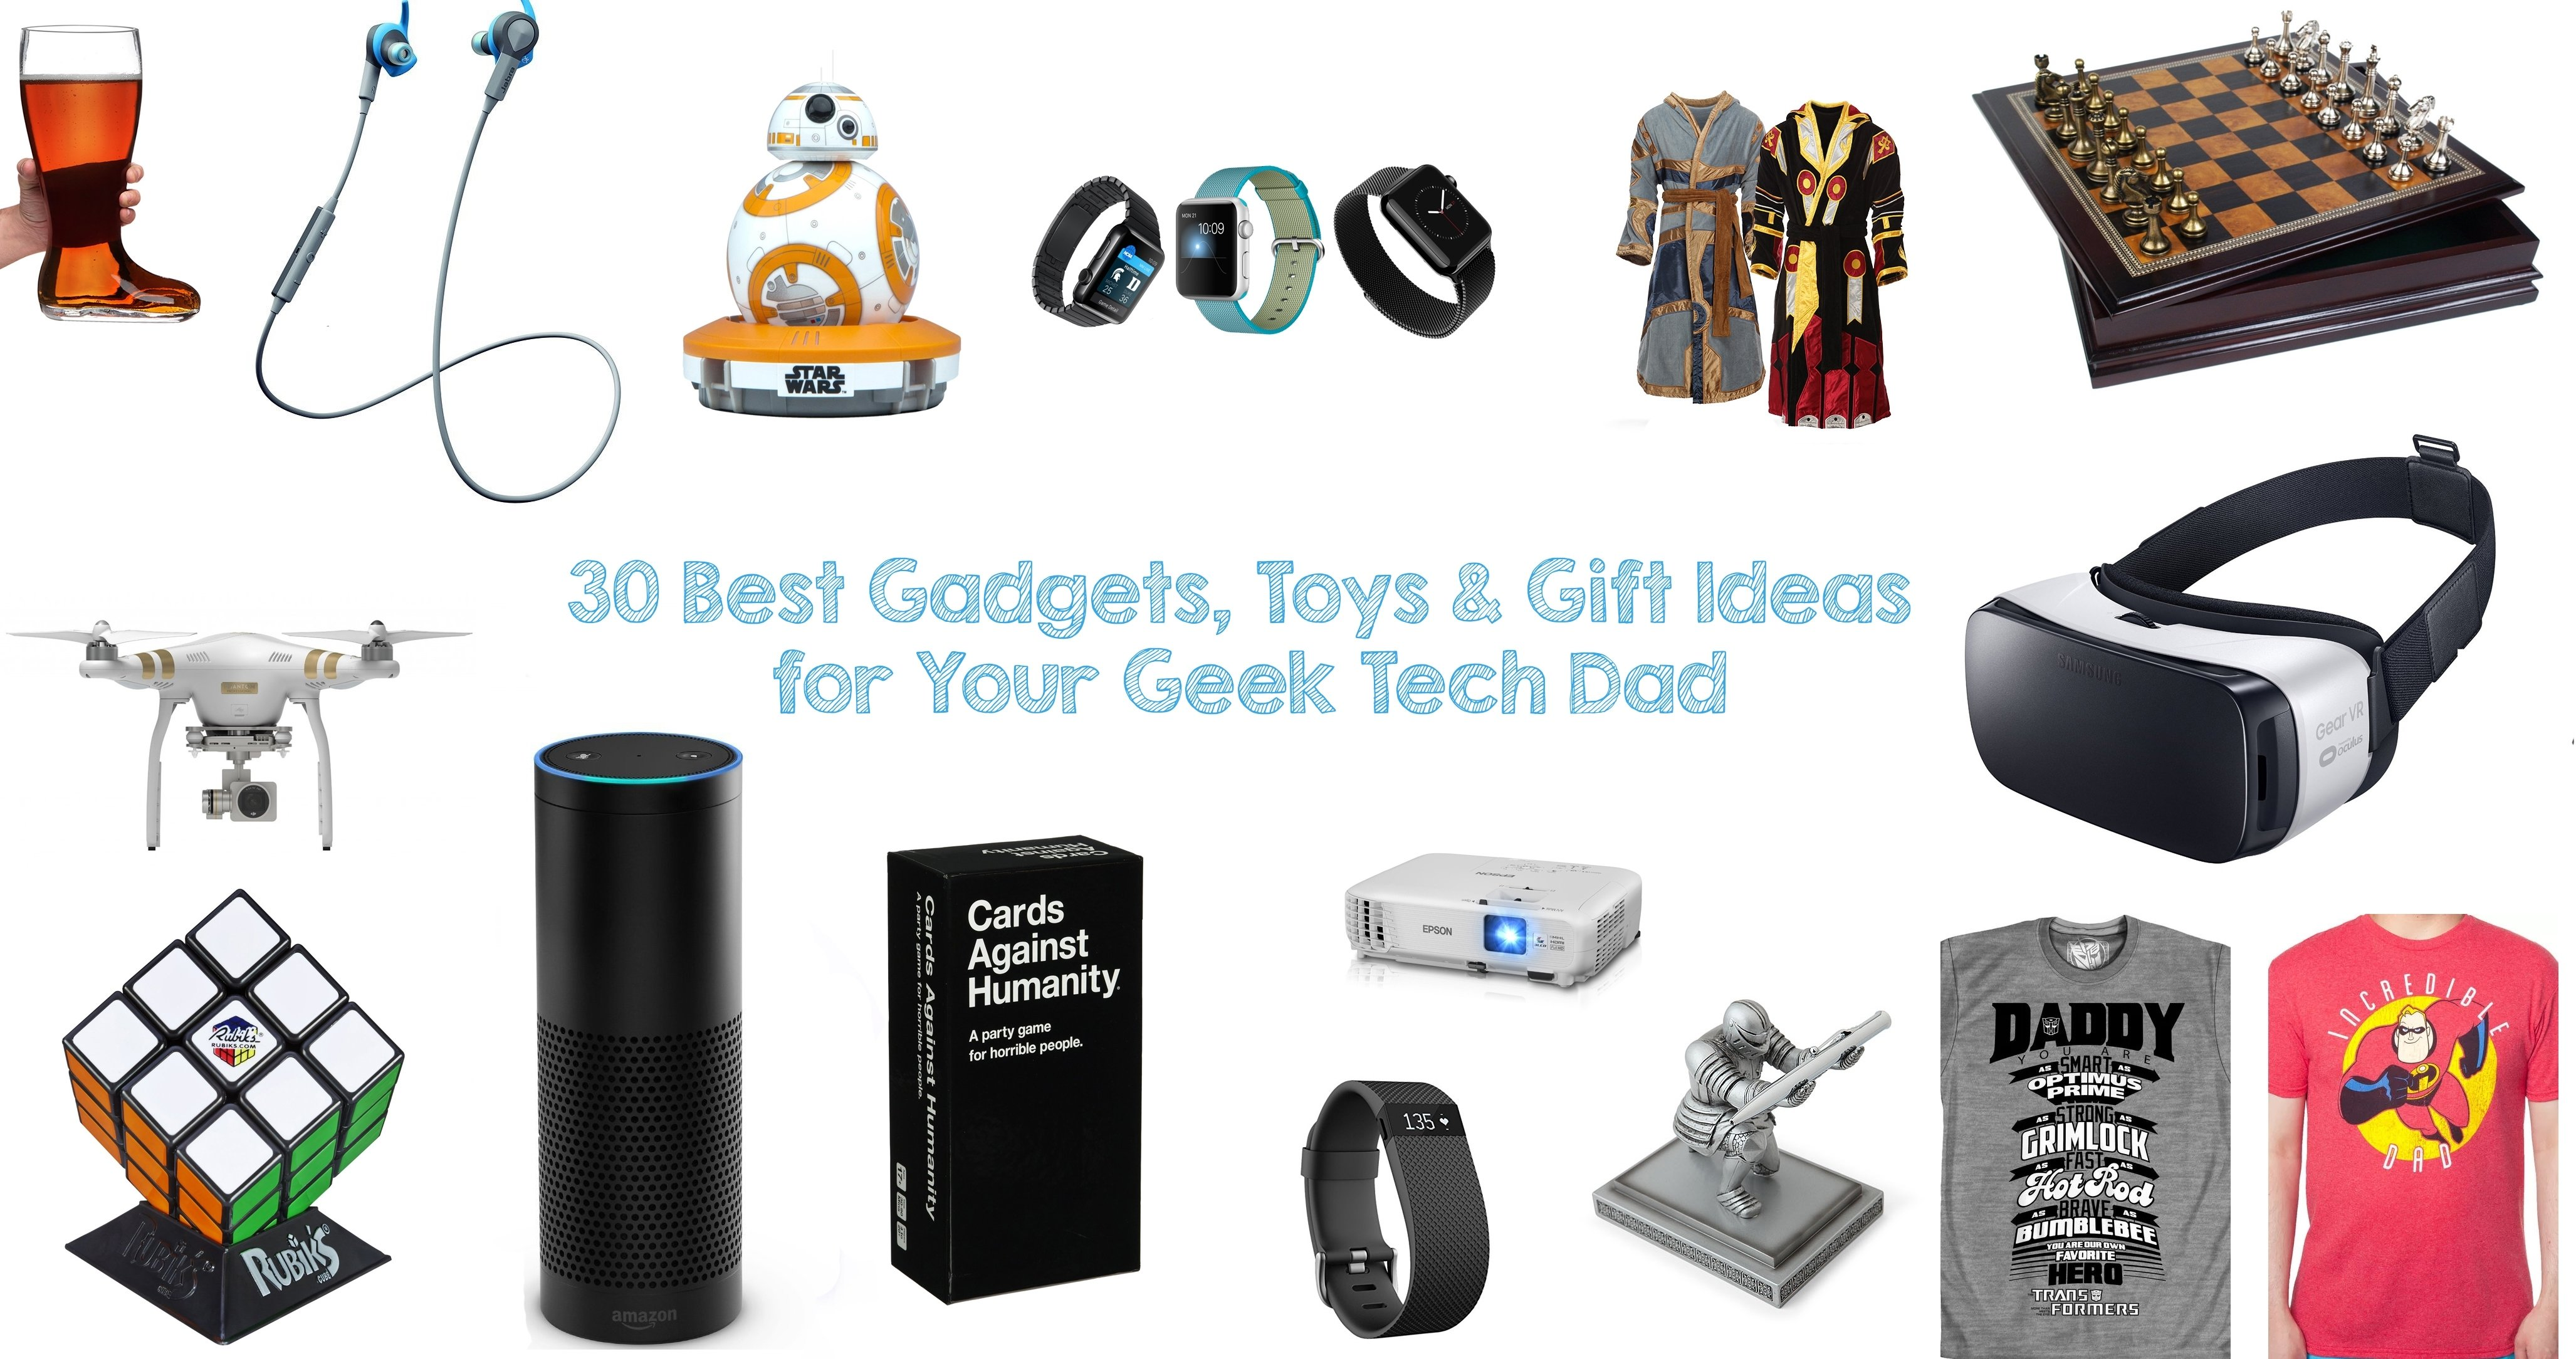 10 Lovable Best Gift Ideas For Dad 30 best gadgets toys gift ideas for your geek tech dad walyou 2 2021